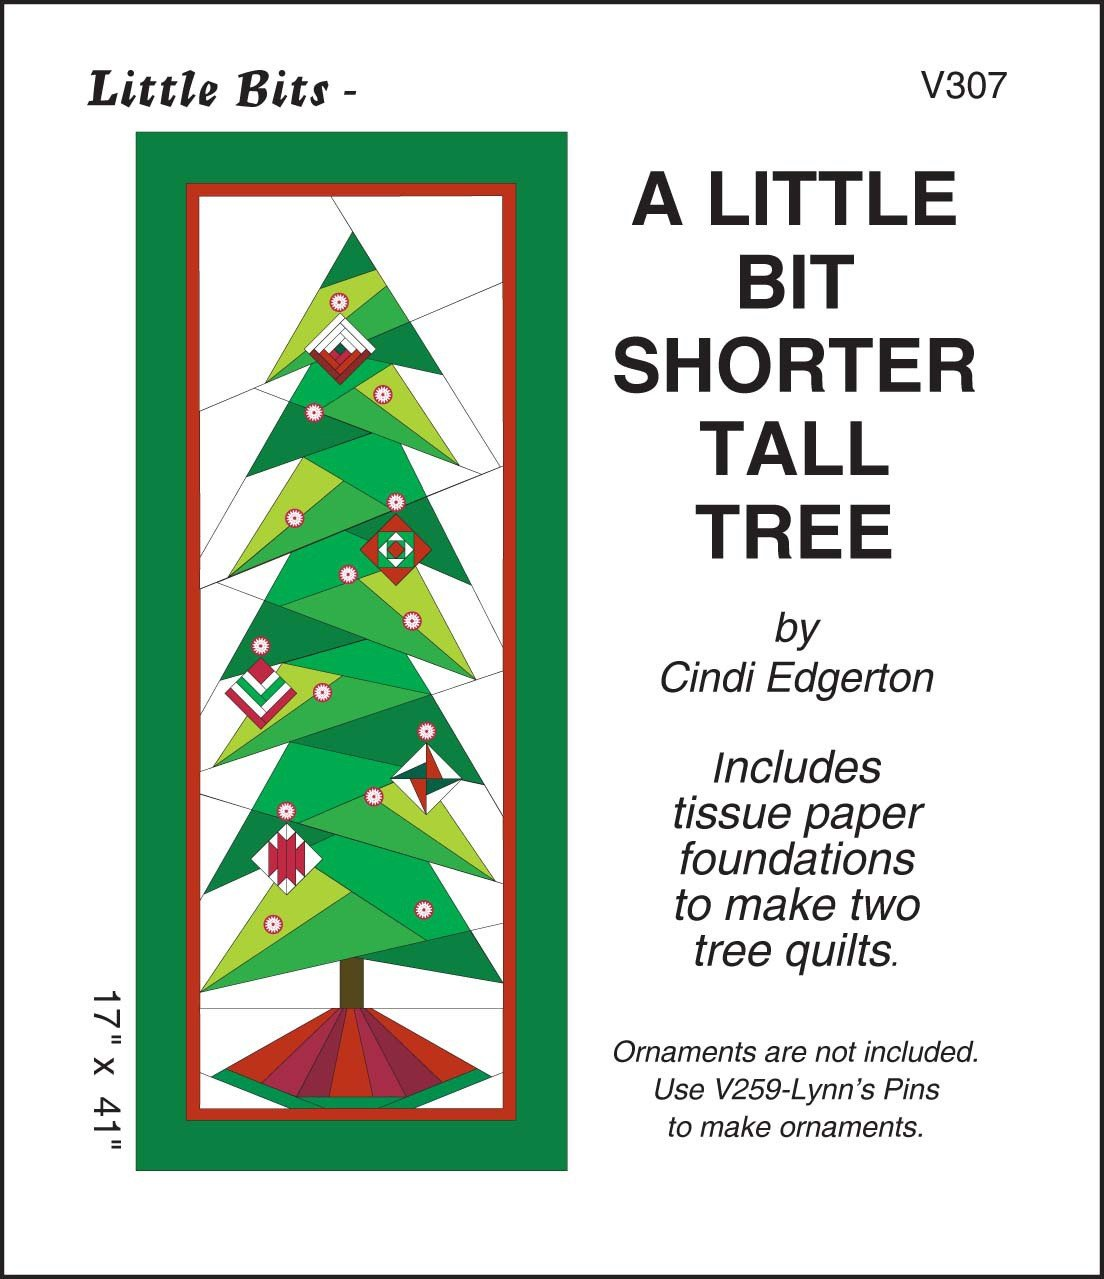 A Little Bit Shorter Tall Trim the Tree A Little Bit More